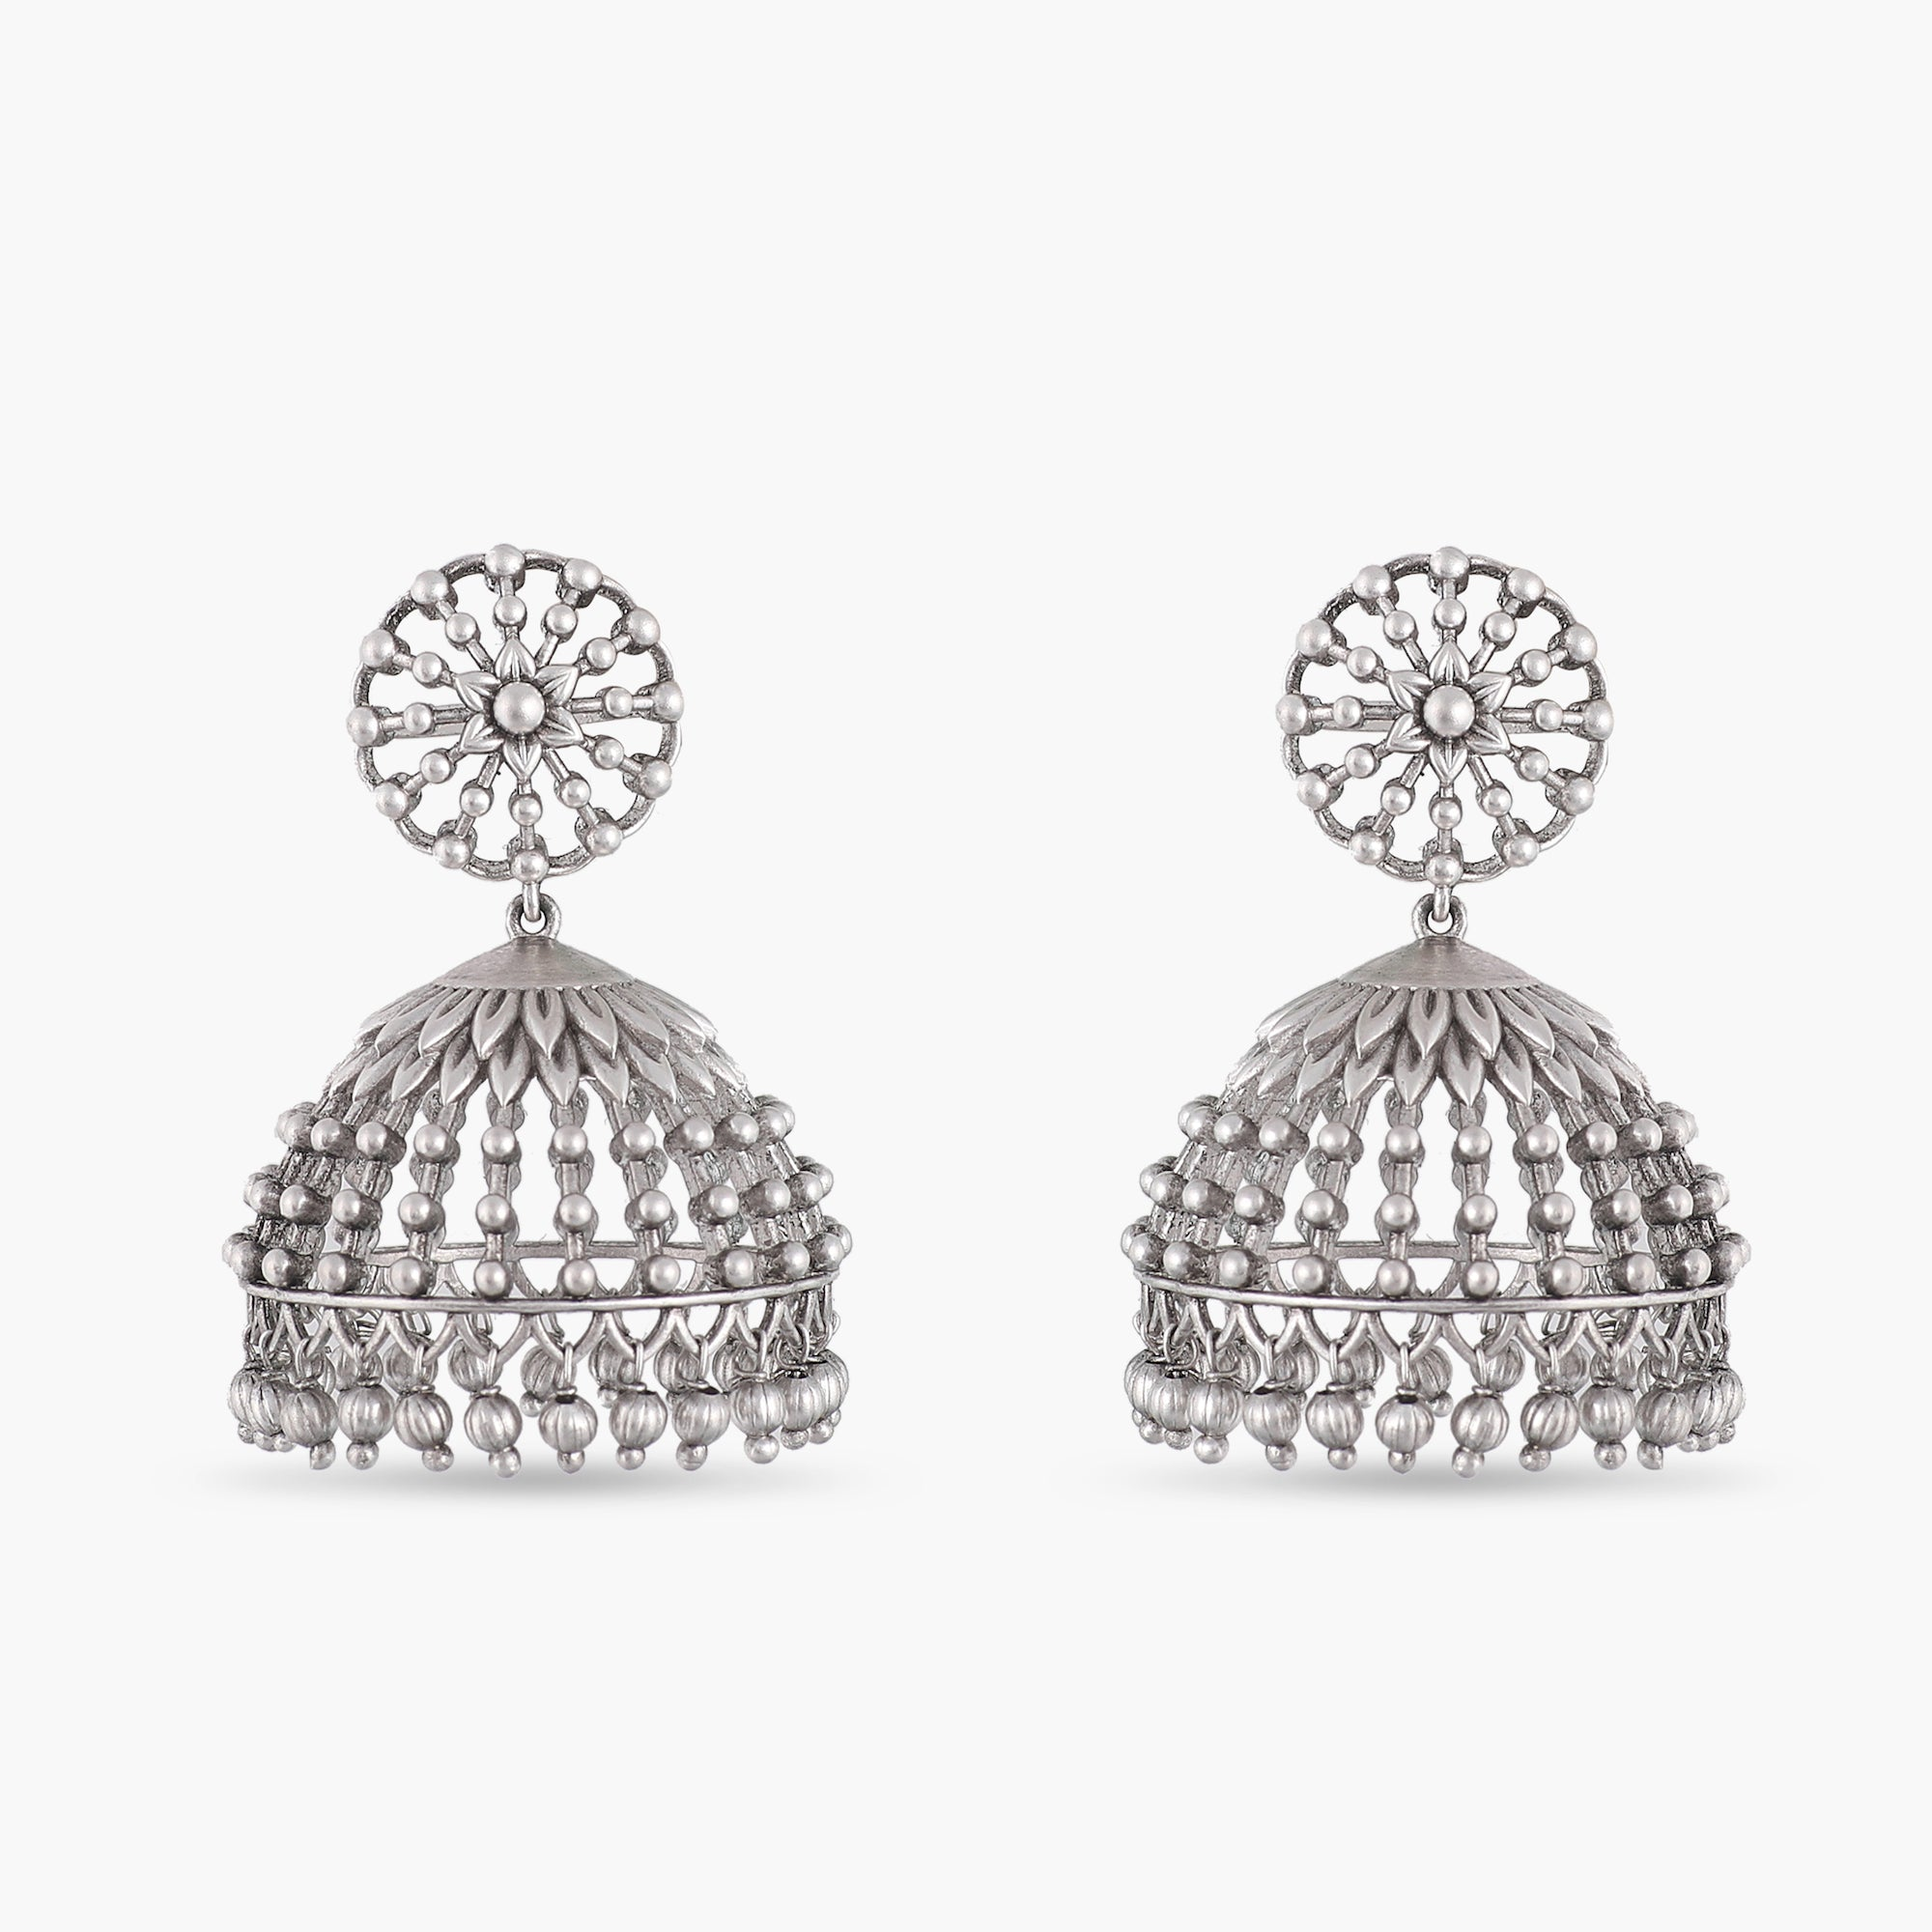 Gagini Antique Silver Jhumka Earrings